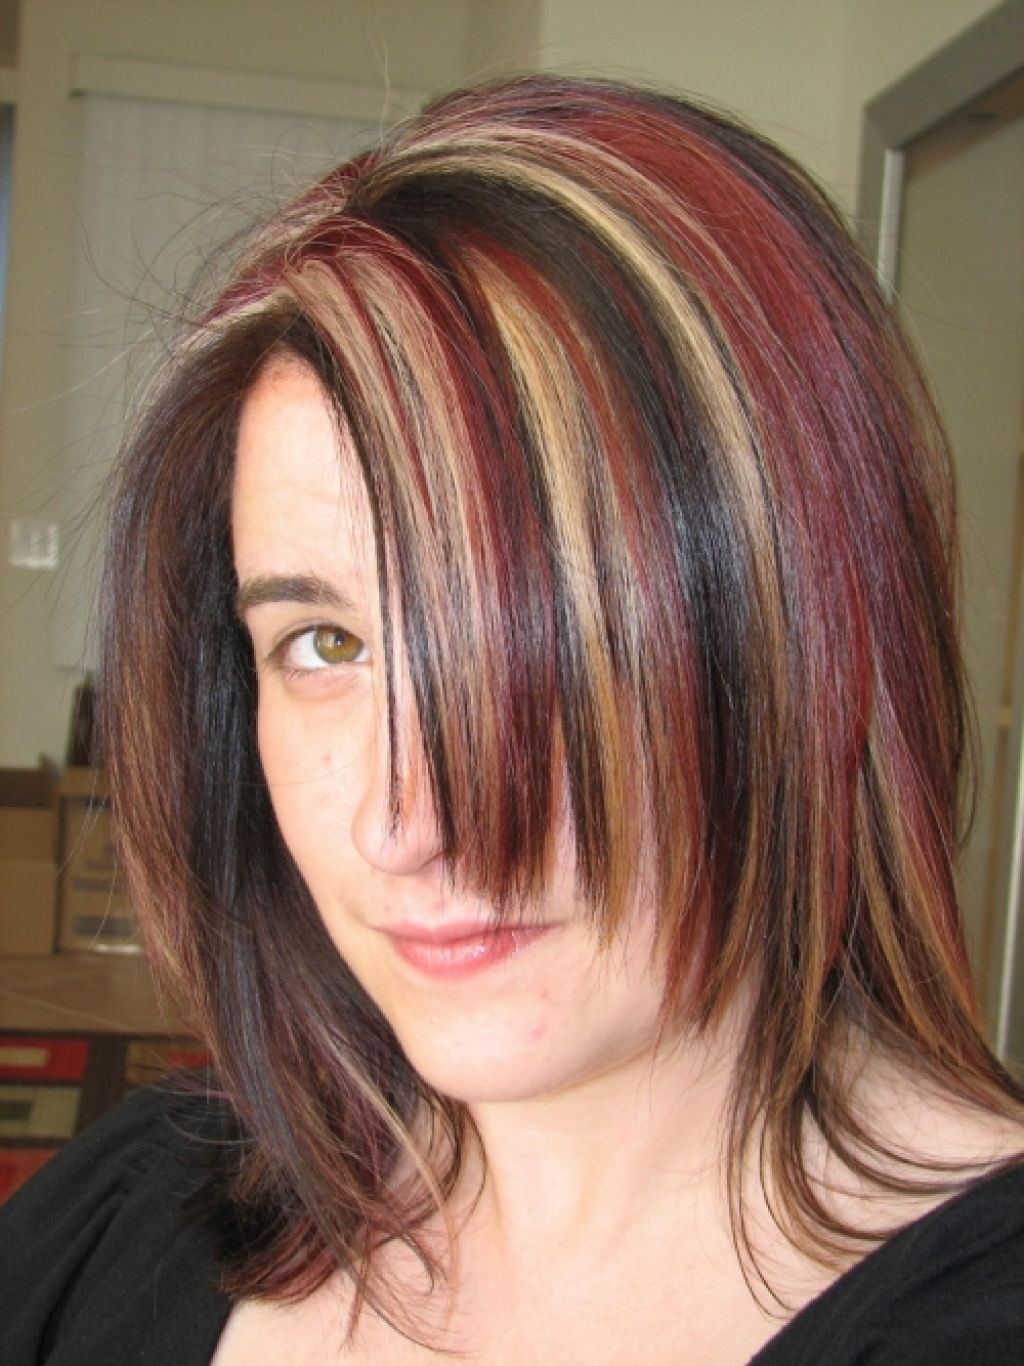 Pin by stacie flood on hair ideas pinterest red hair color brown hair with blonde and red highlights pictures brown hair fashion styles reference pmusecretfo Gallery